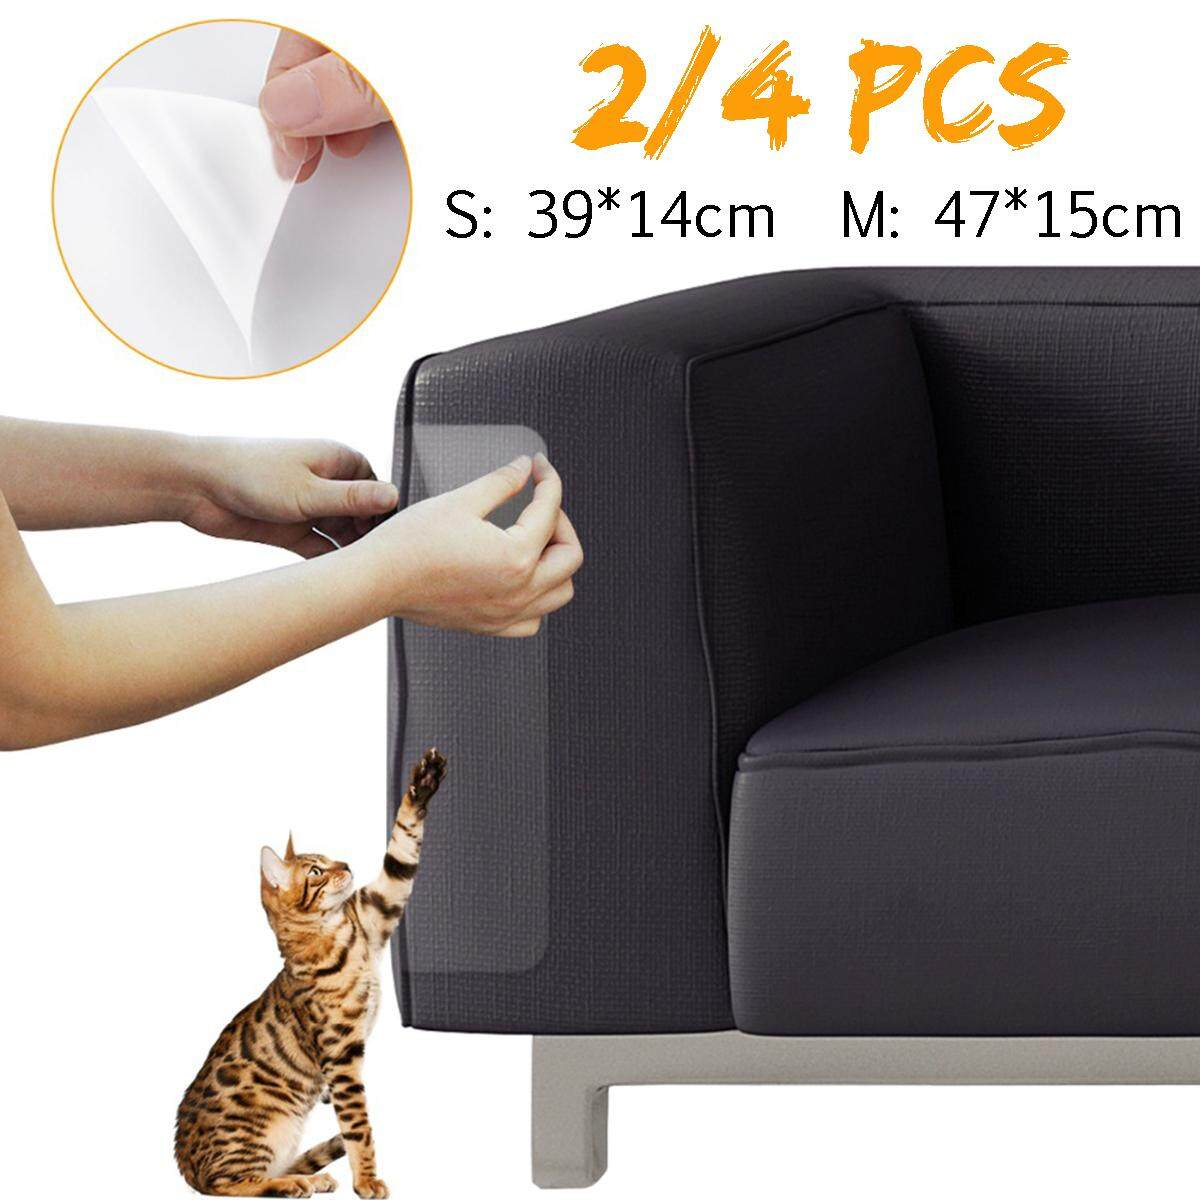 【free Shipping + Flash Deal】2pcs S Pet Cat Scratch Guard Mat Cat Scratching Post Furniture Sofa Protector By Freebang.